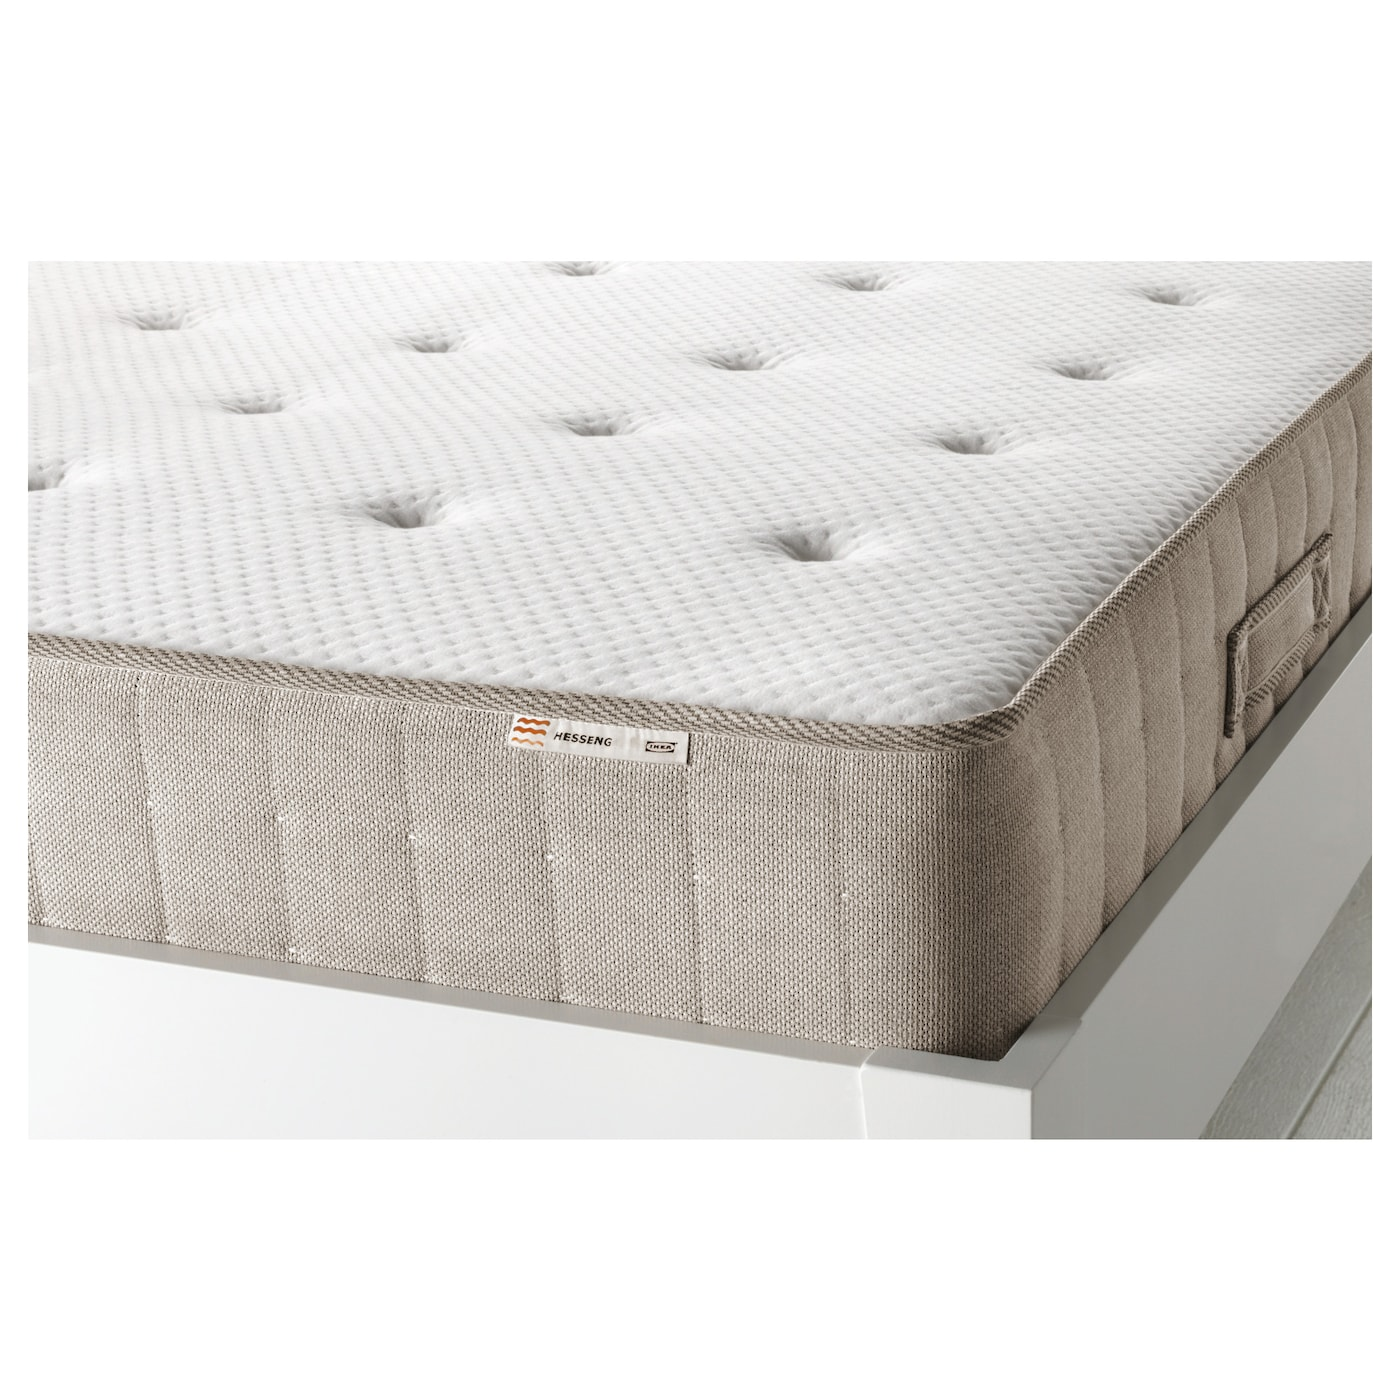 Hesseng pocket sprung mattress medium firm natural colour standard double ikea - Matelas ikea 140x200 ...